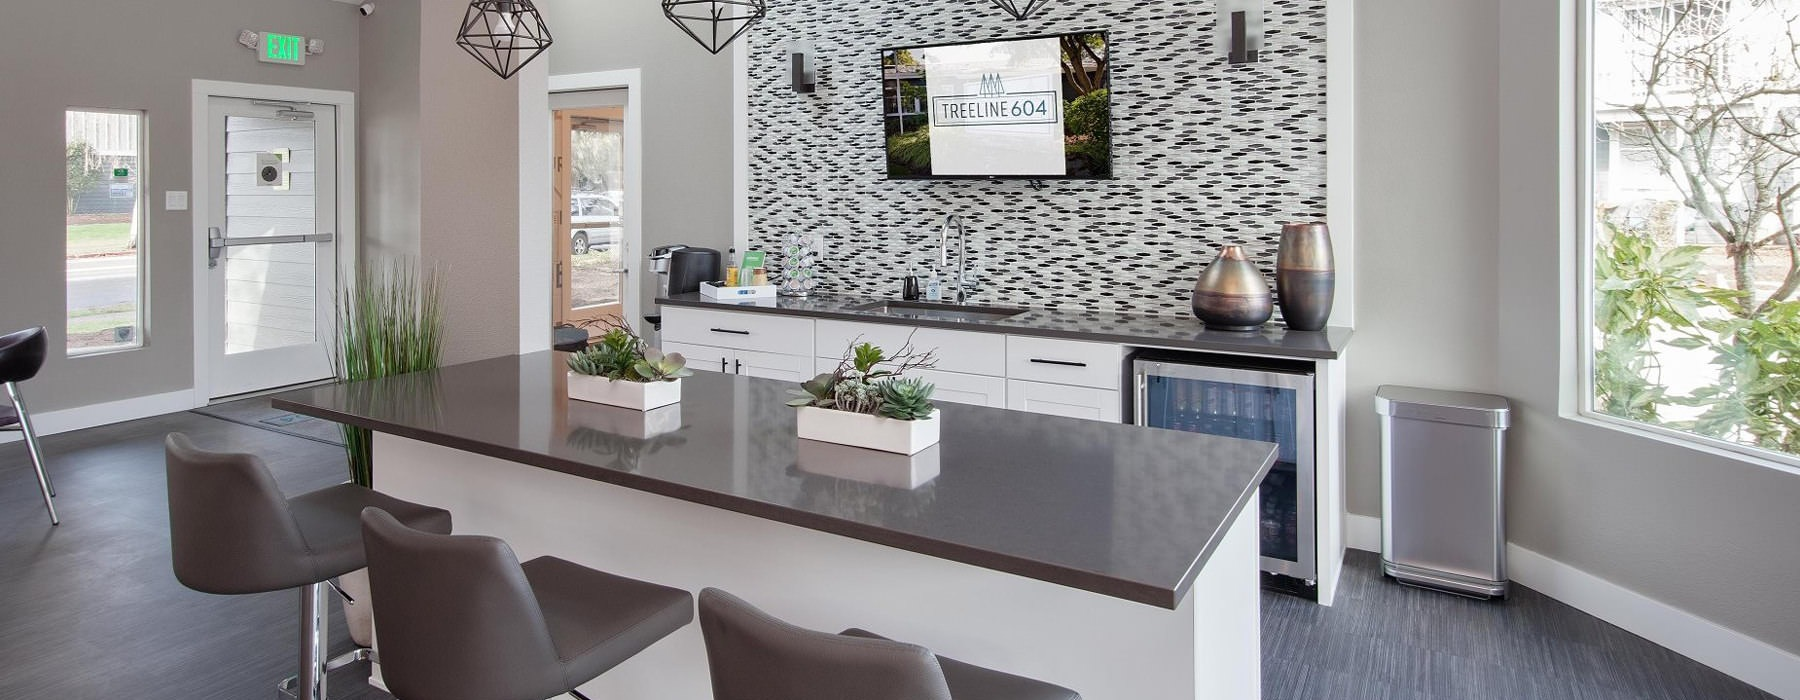 clubhouse kitchen with island and abundant natural lighting